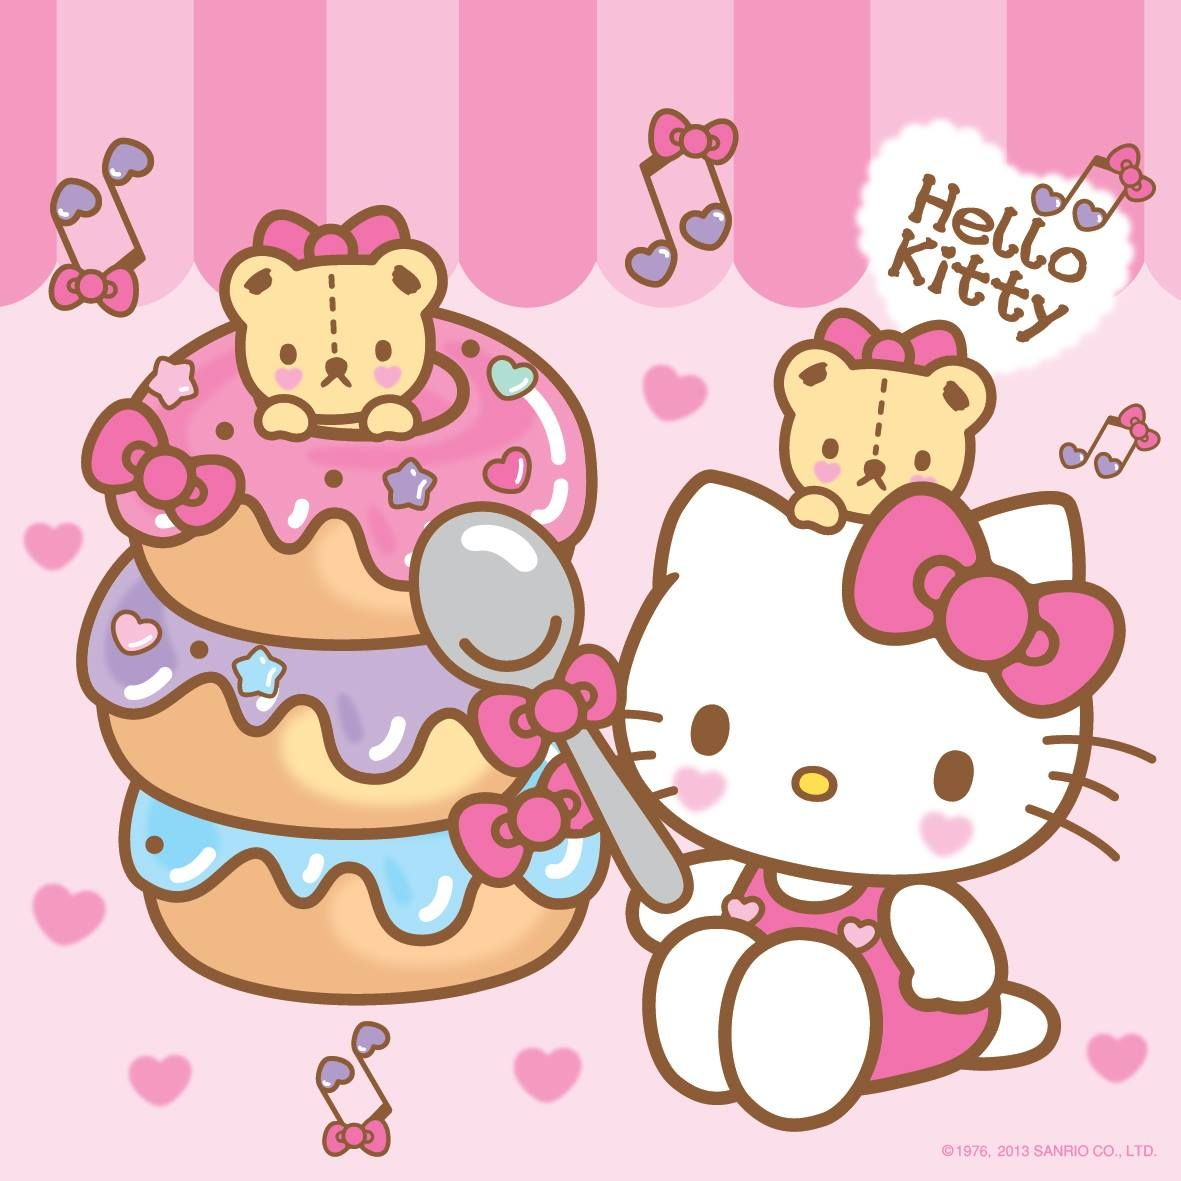 Popular Wallpaper Hello Kitty Cupcake - 3a3ff47dde2761a6e5b95153e2ffaddf  Perfect Image Reference_9333.jpg